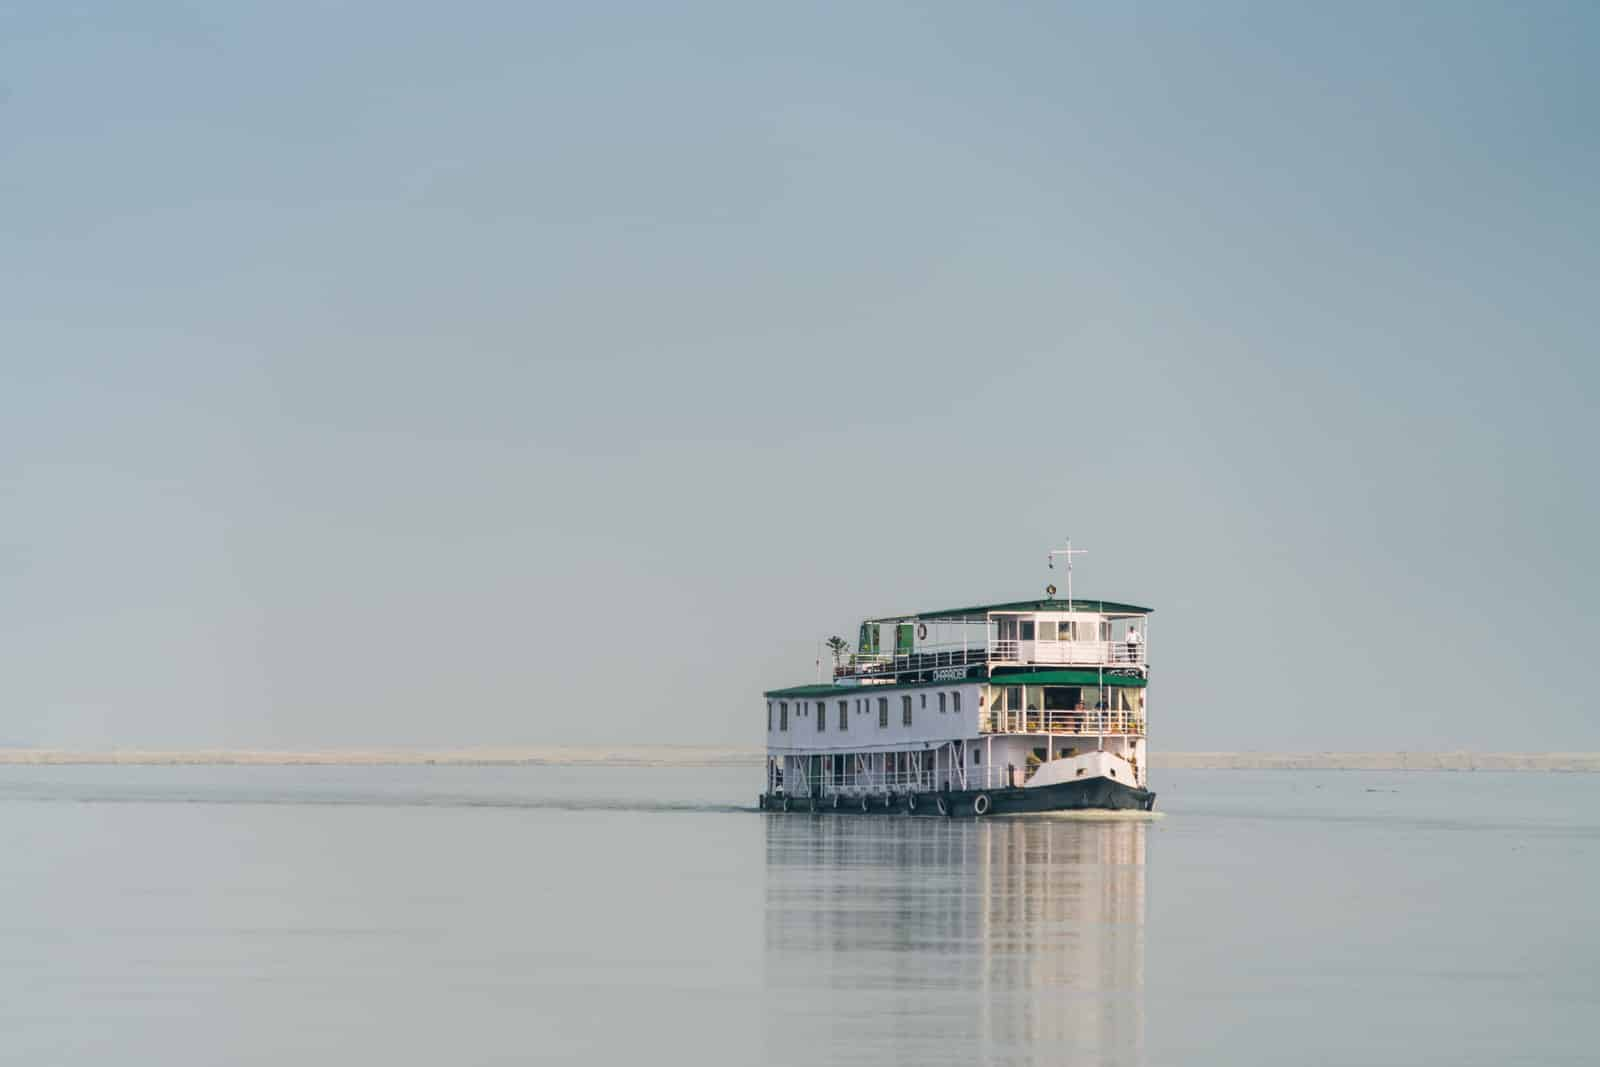 Brahmaputra river cruise with Assam Bengal Navigation - ABN Charaidew boat sailing on the water - Lost With Purpose travel blog